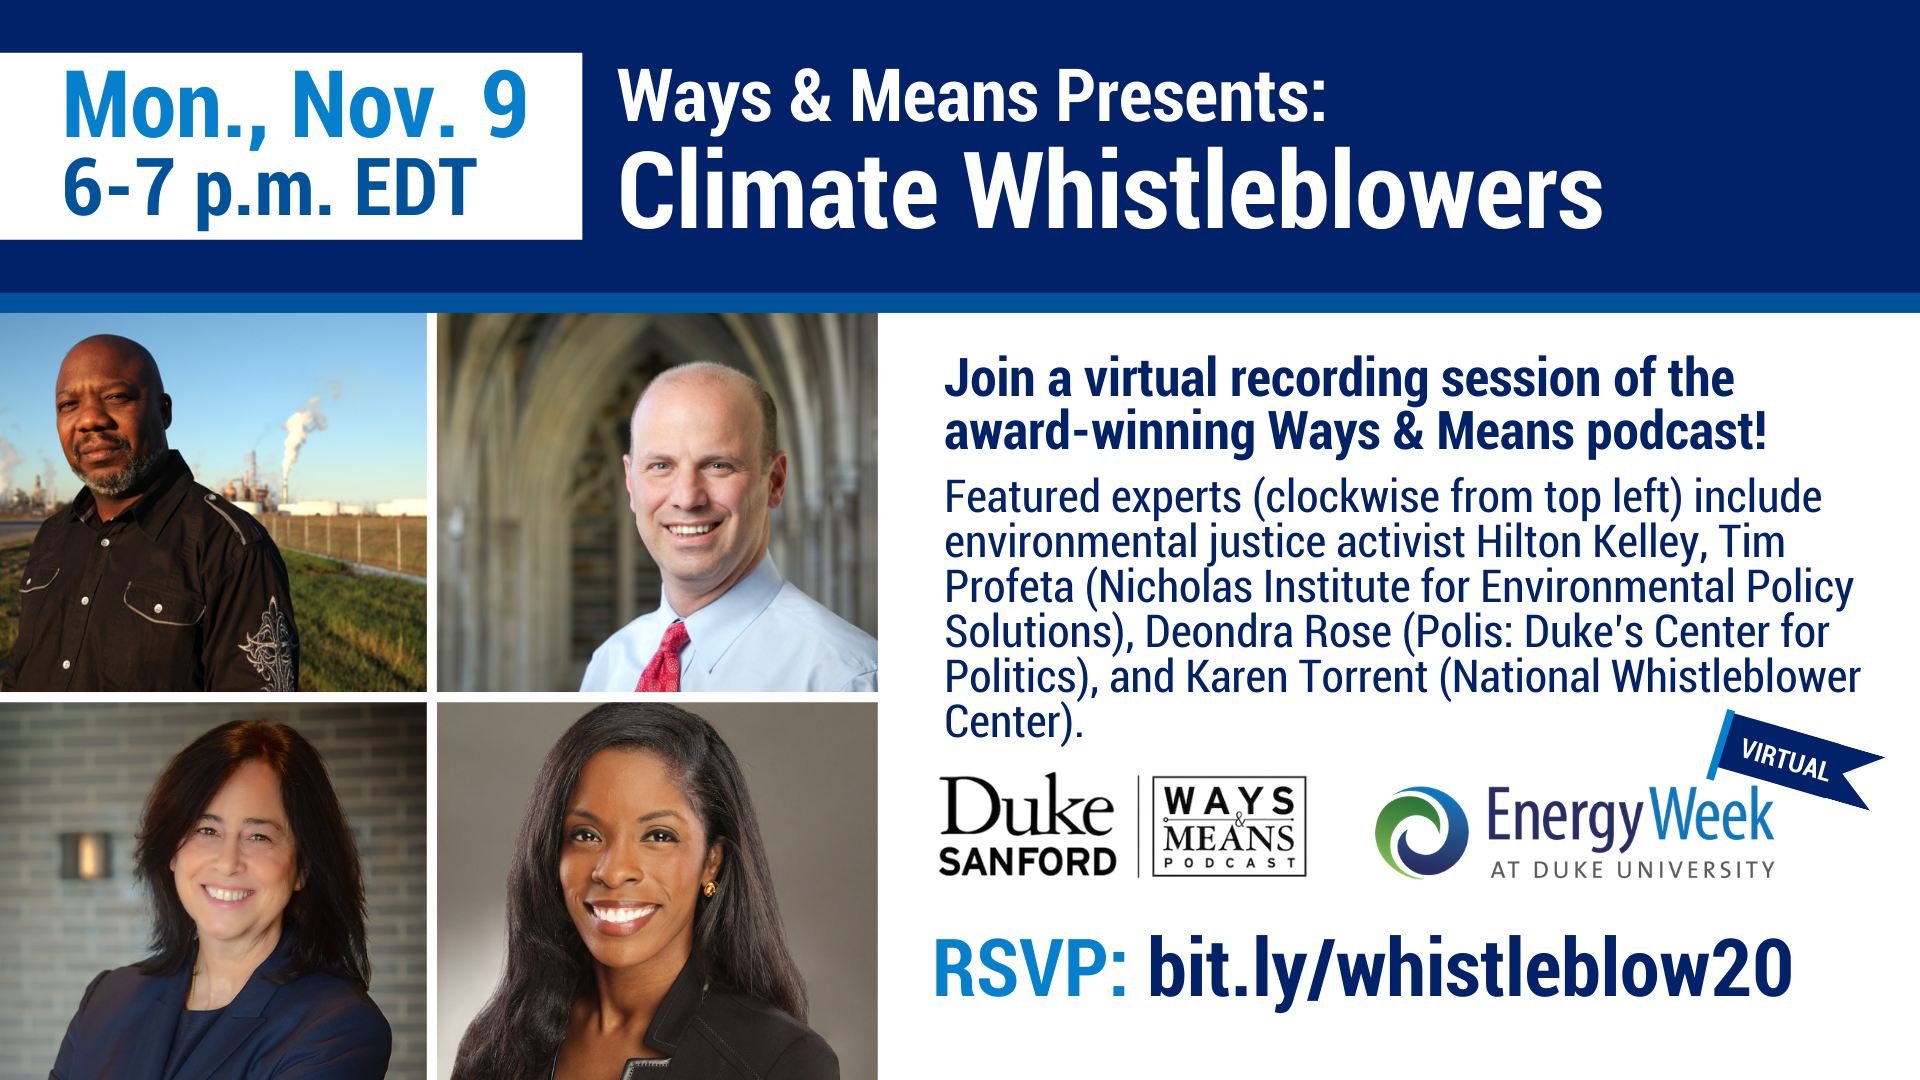 Join Ways & Means for Climate Whistleblowers